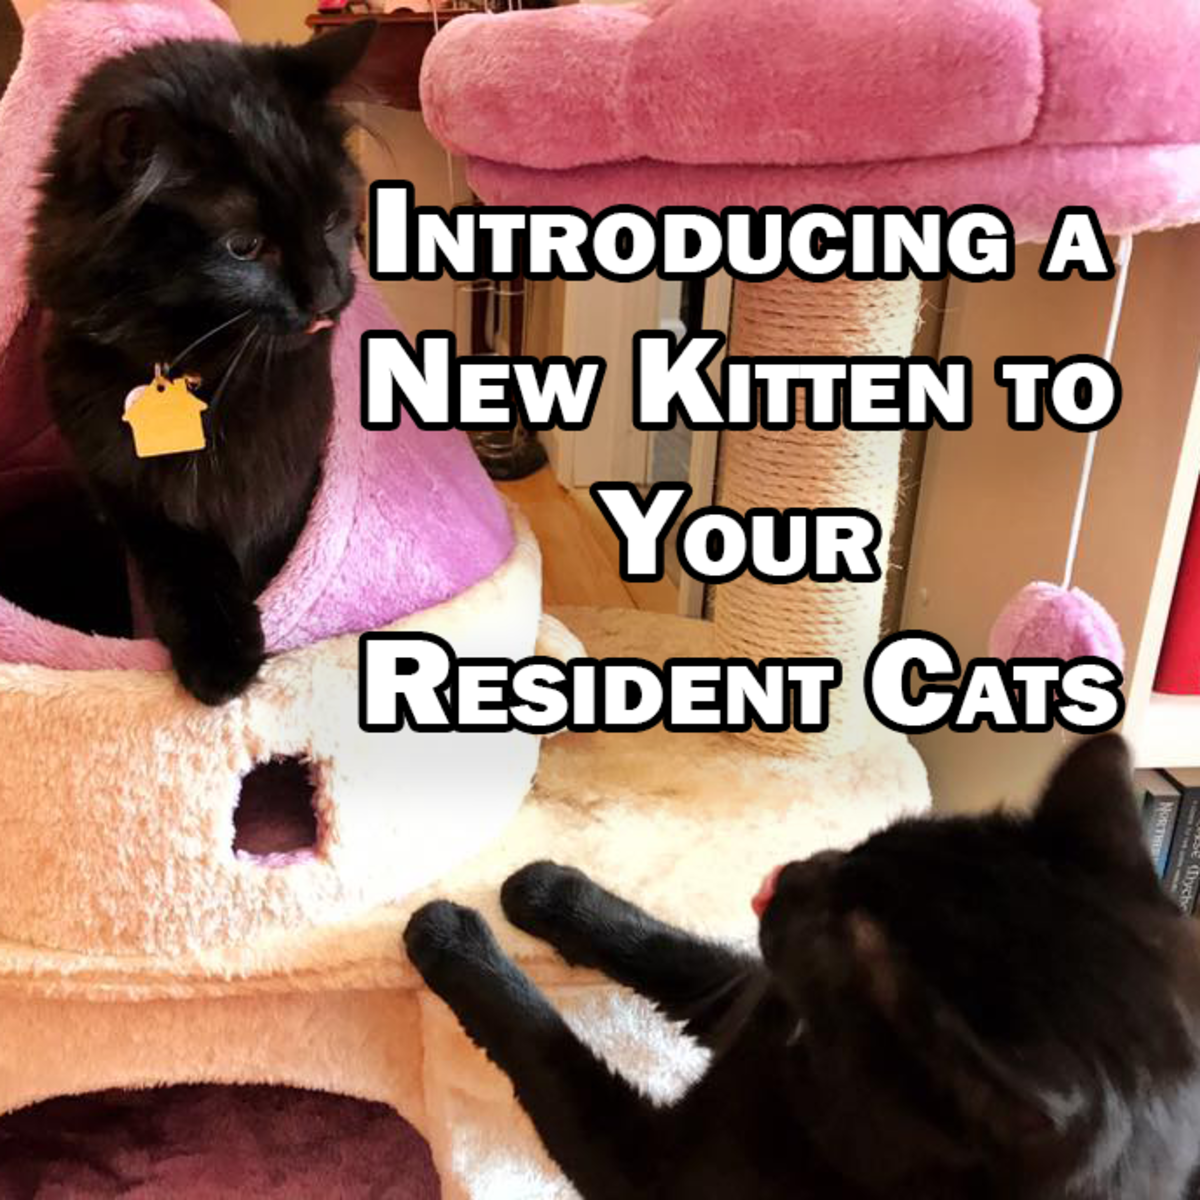 Introducing a New Kitten to Your Resident Cats